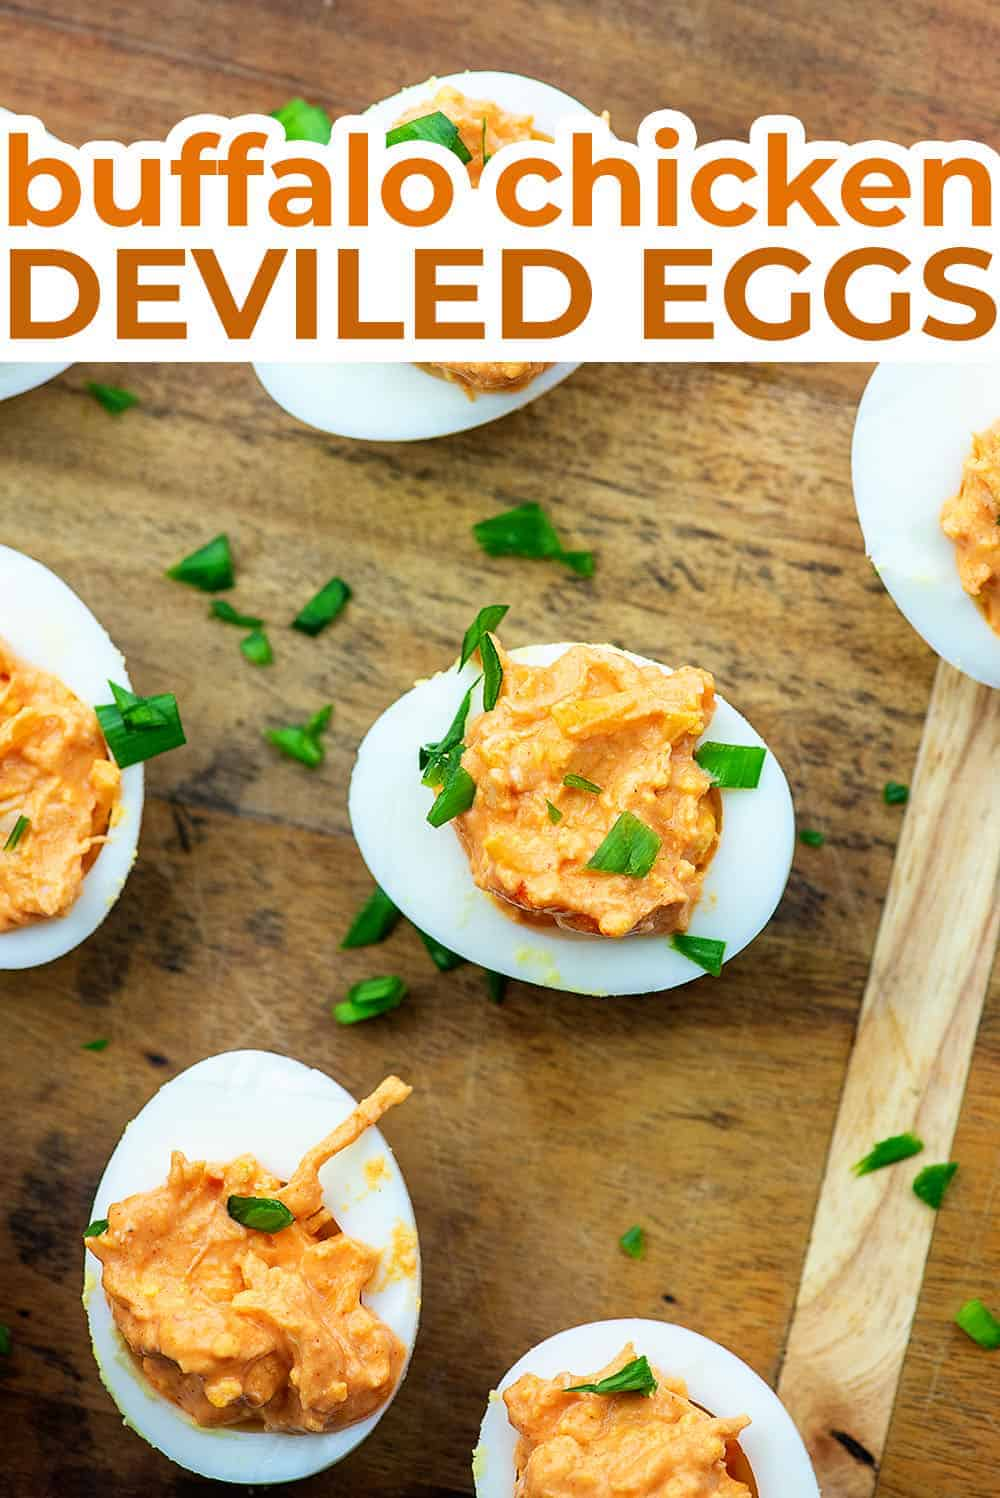 Several buffalo chicken deviled eggs on a wooden cutting board